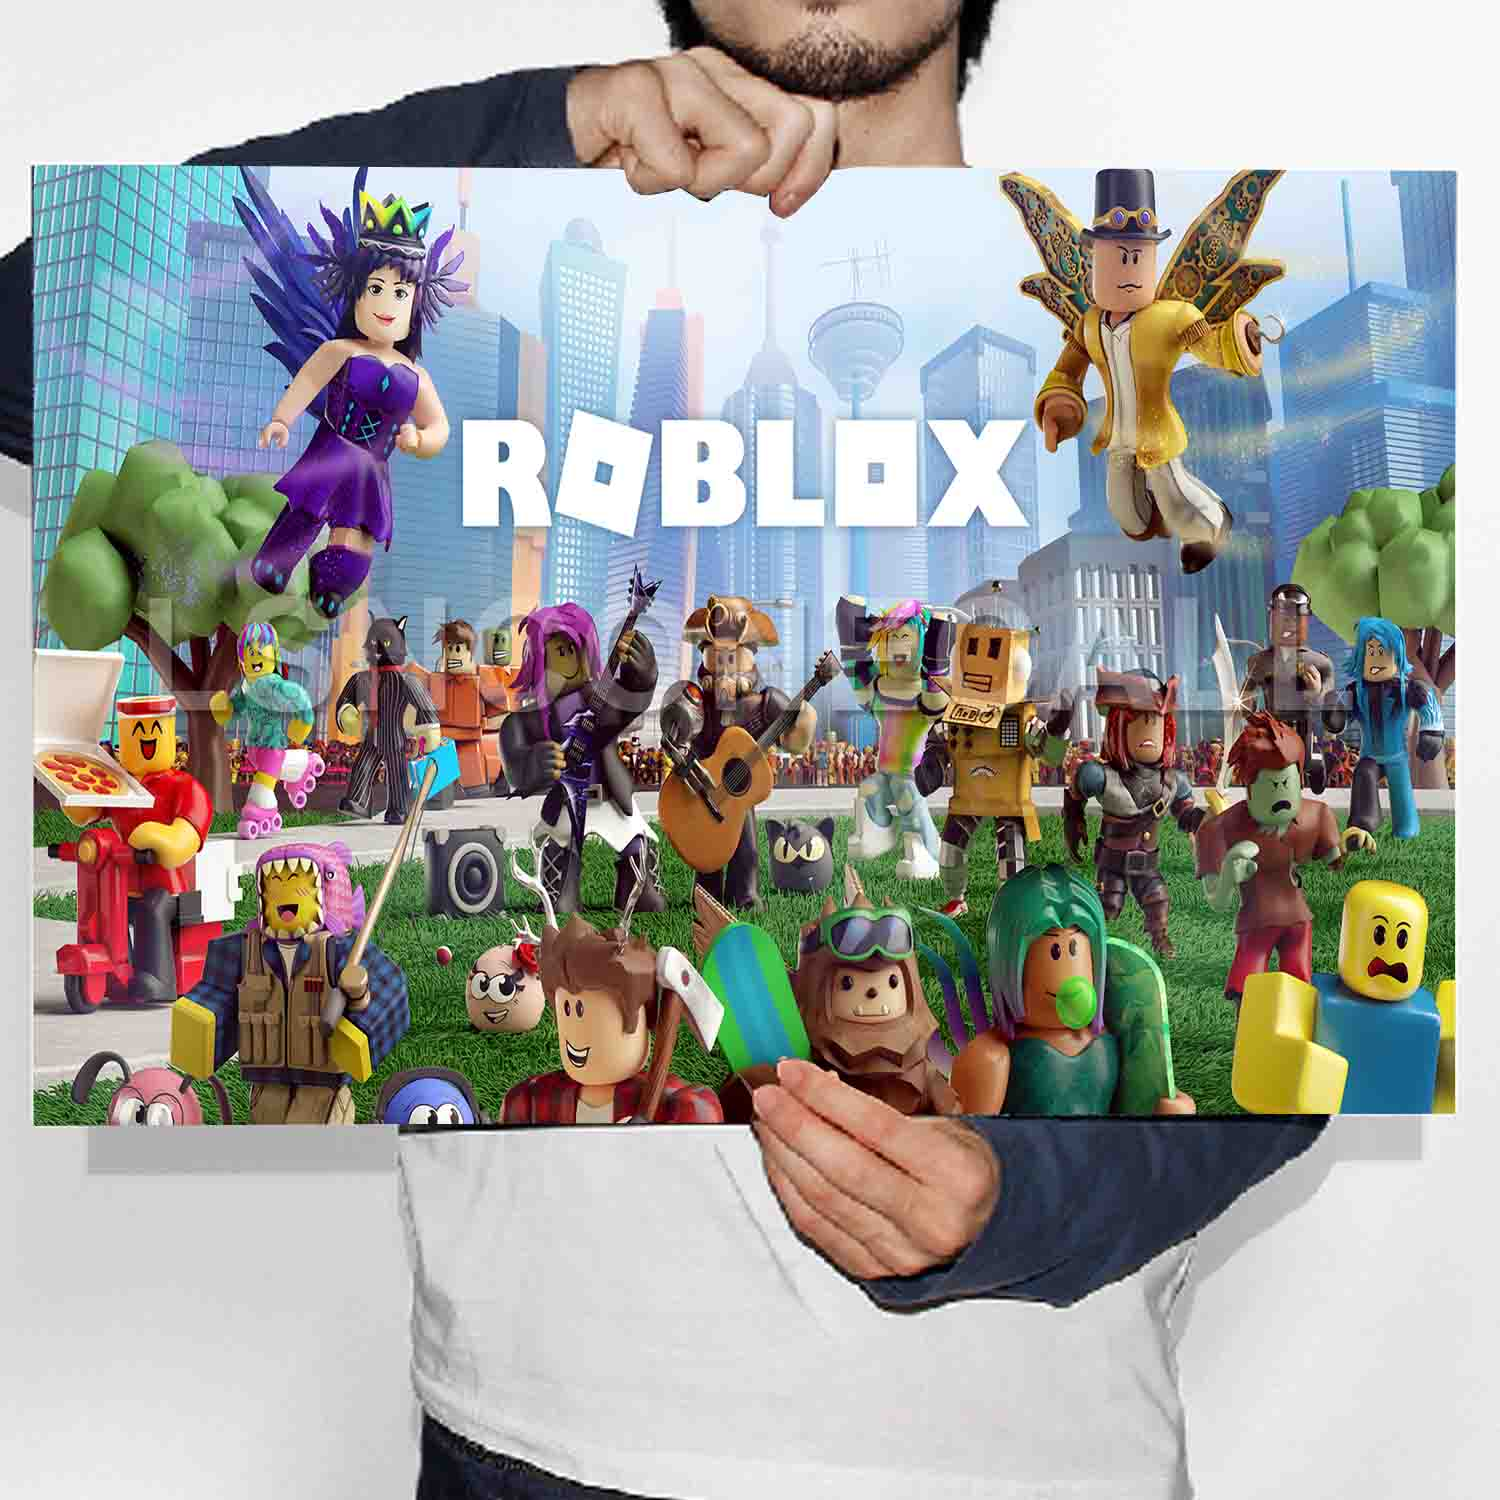 Roblox Poster Print Art Wall Decor - roblox how to go through walls 2019